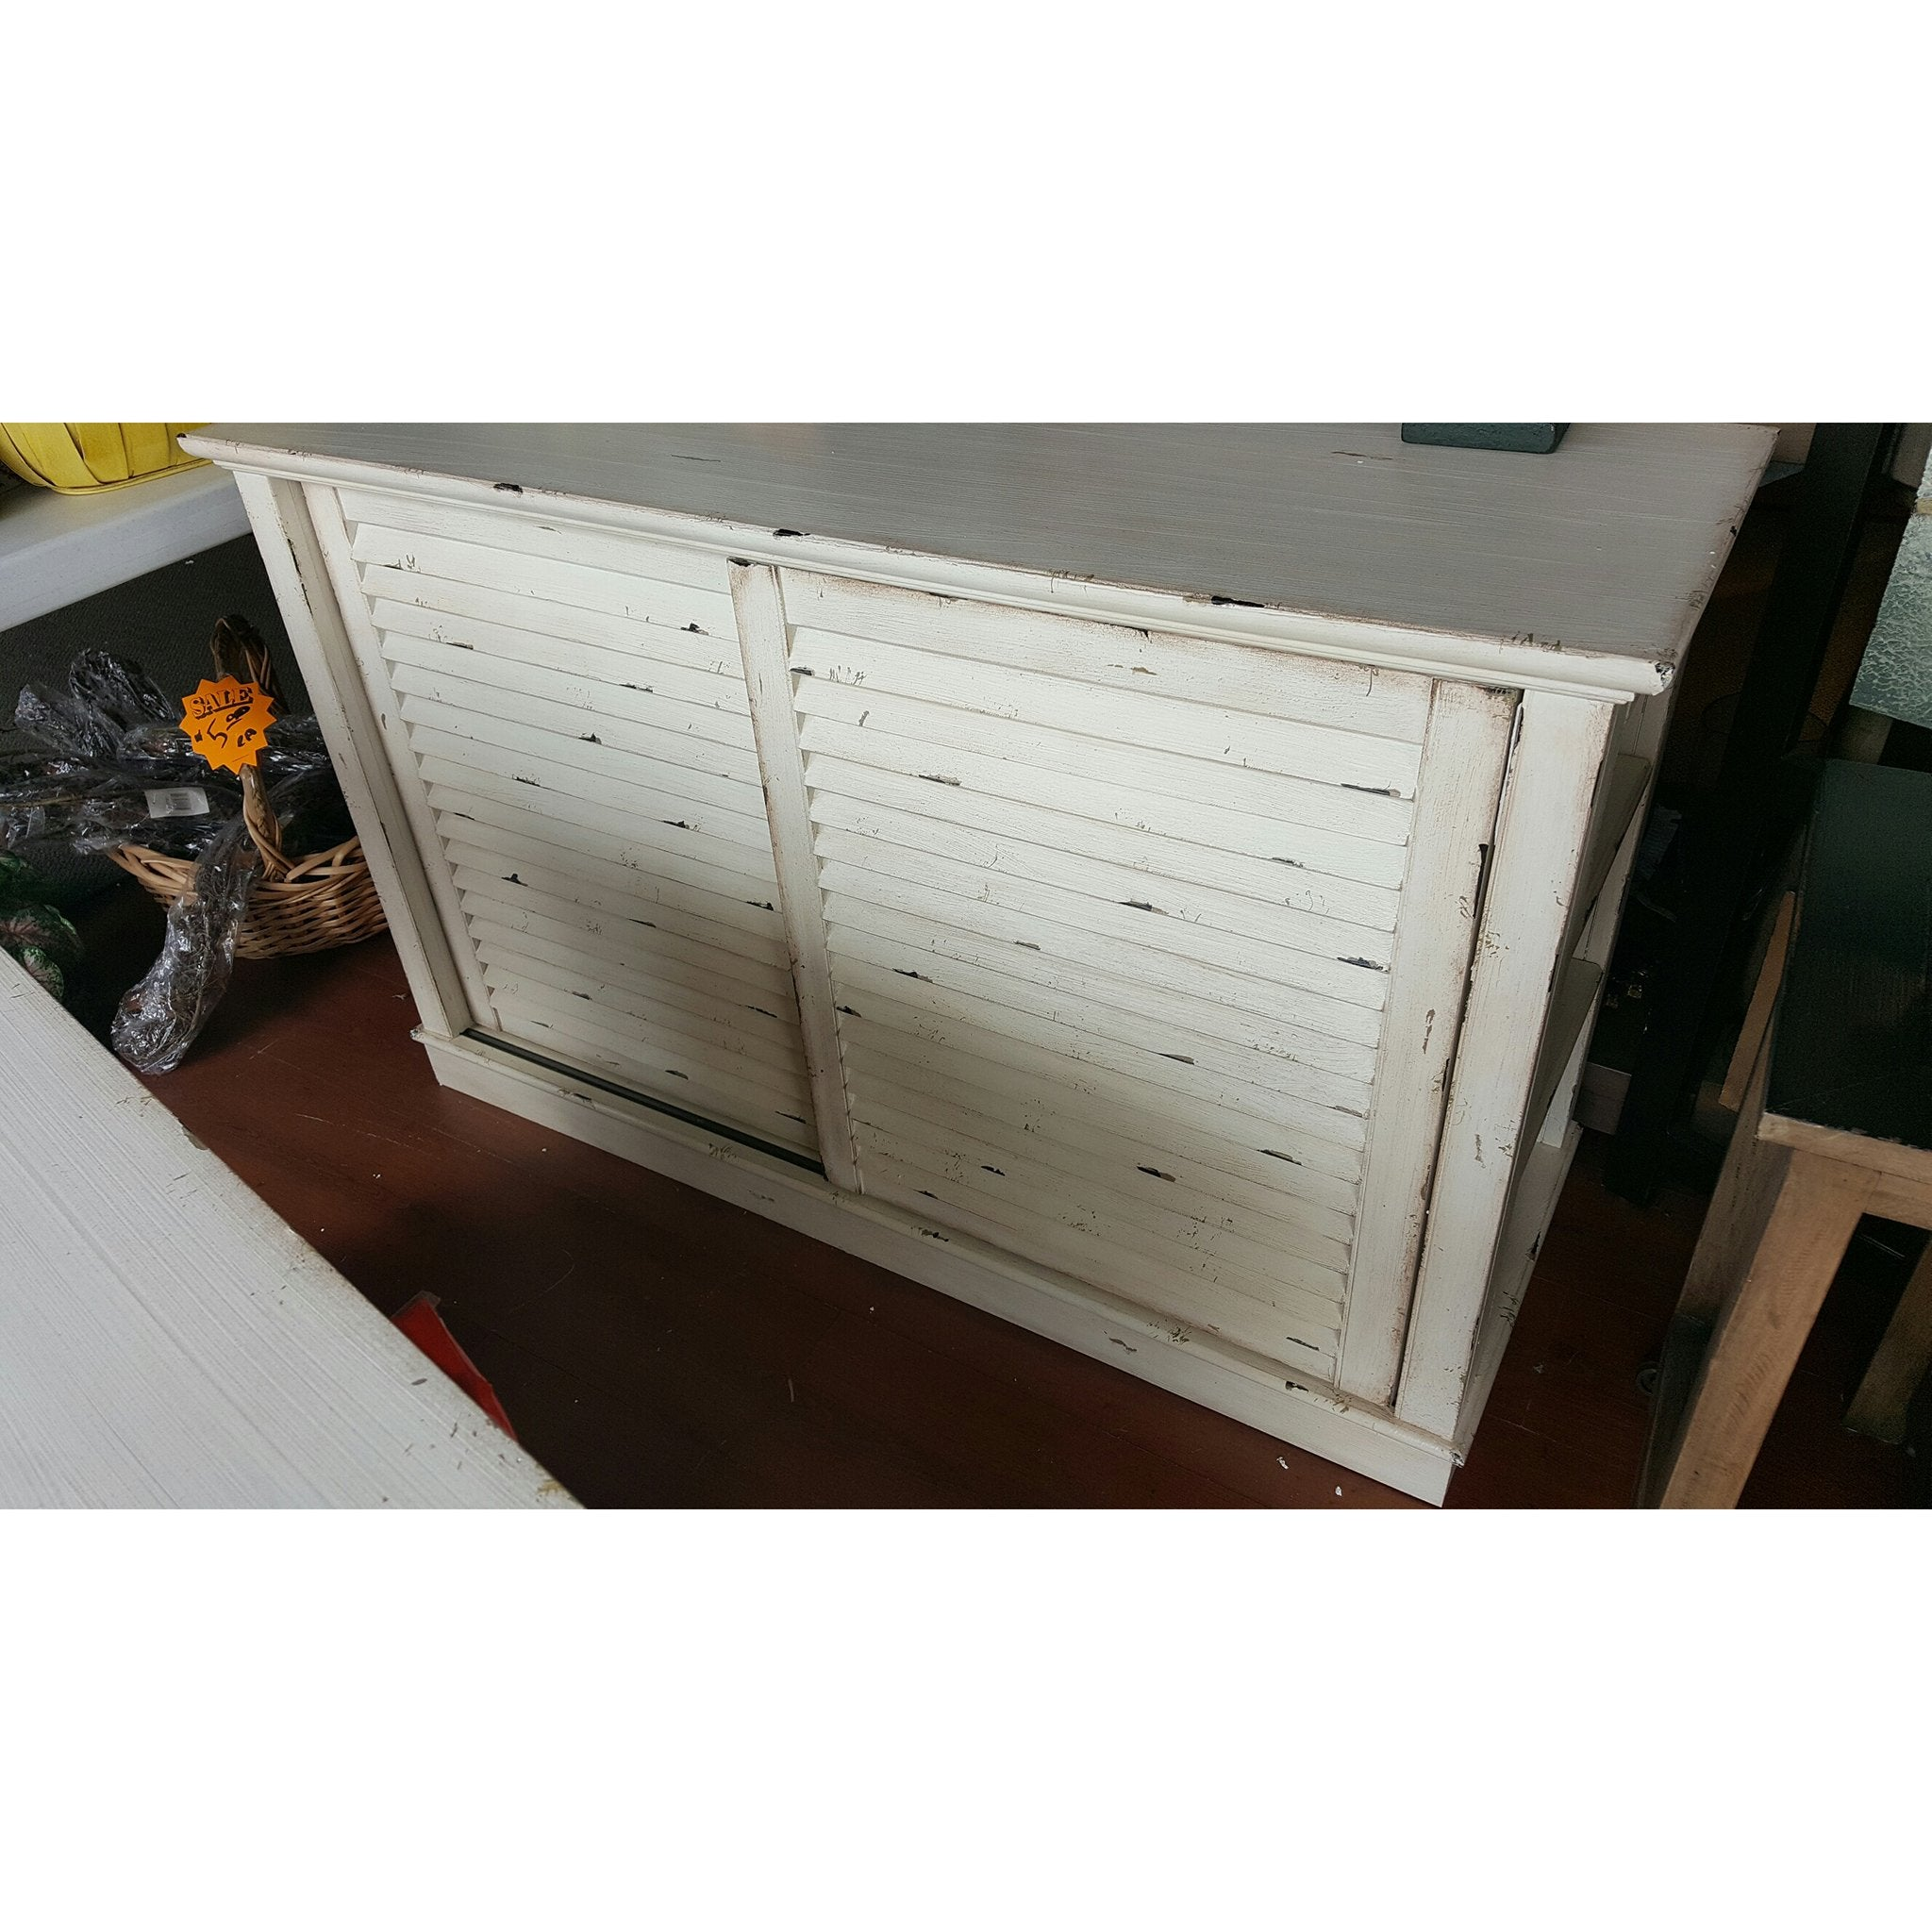 Distressed White Shutter Media Center - TV Stand Cottage - Hidden Treasures - Furniture on Main